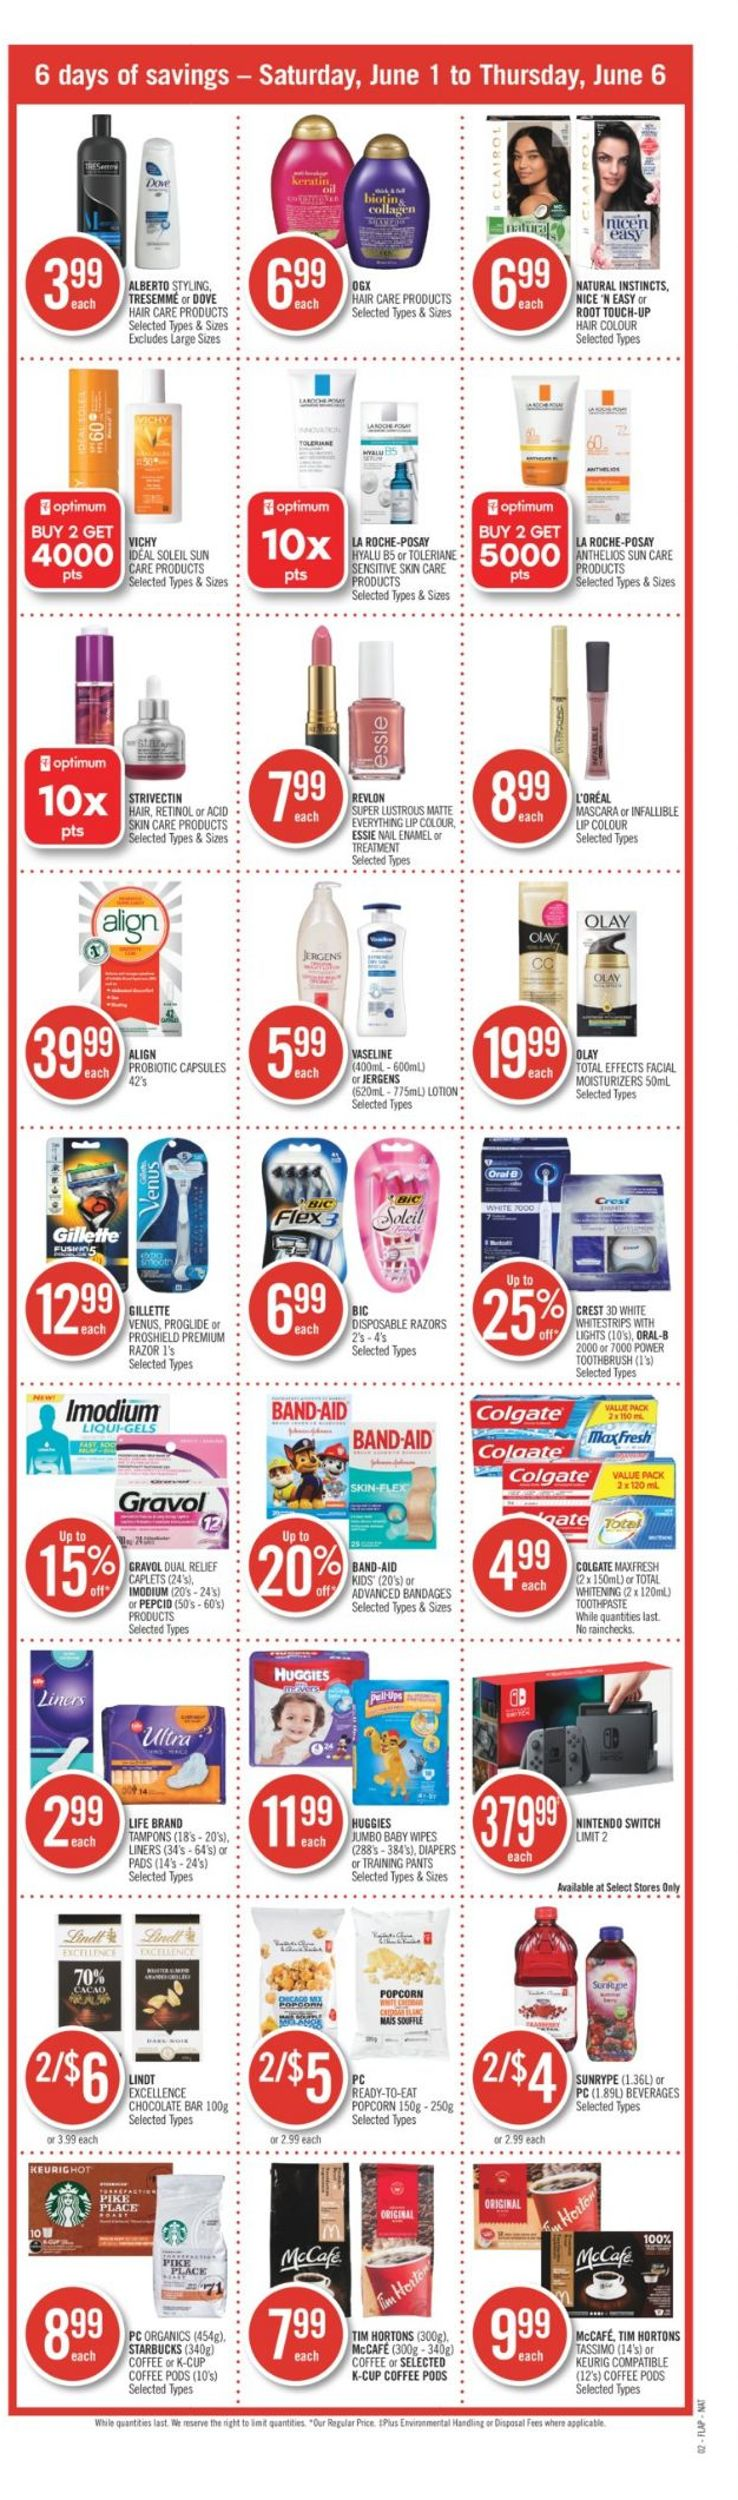 Pharmaprix Flyer - 06/01-06/06/2019 (Page 2)